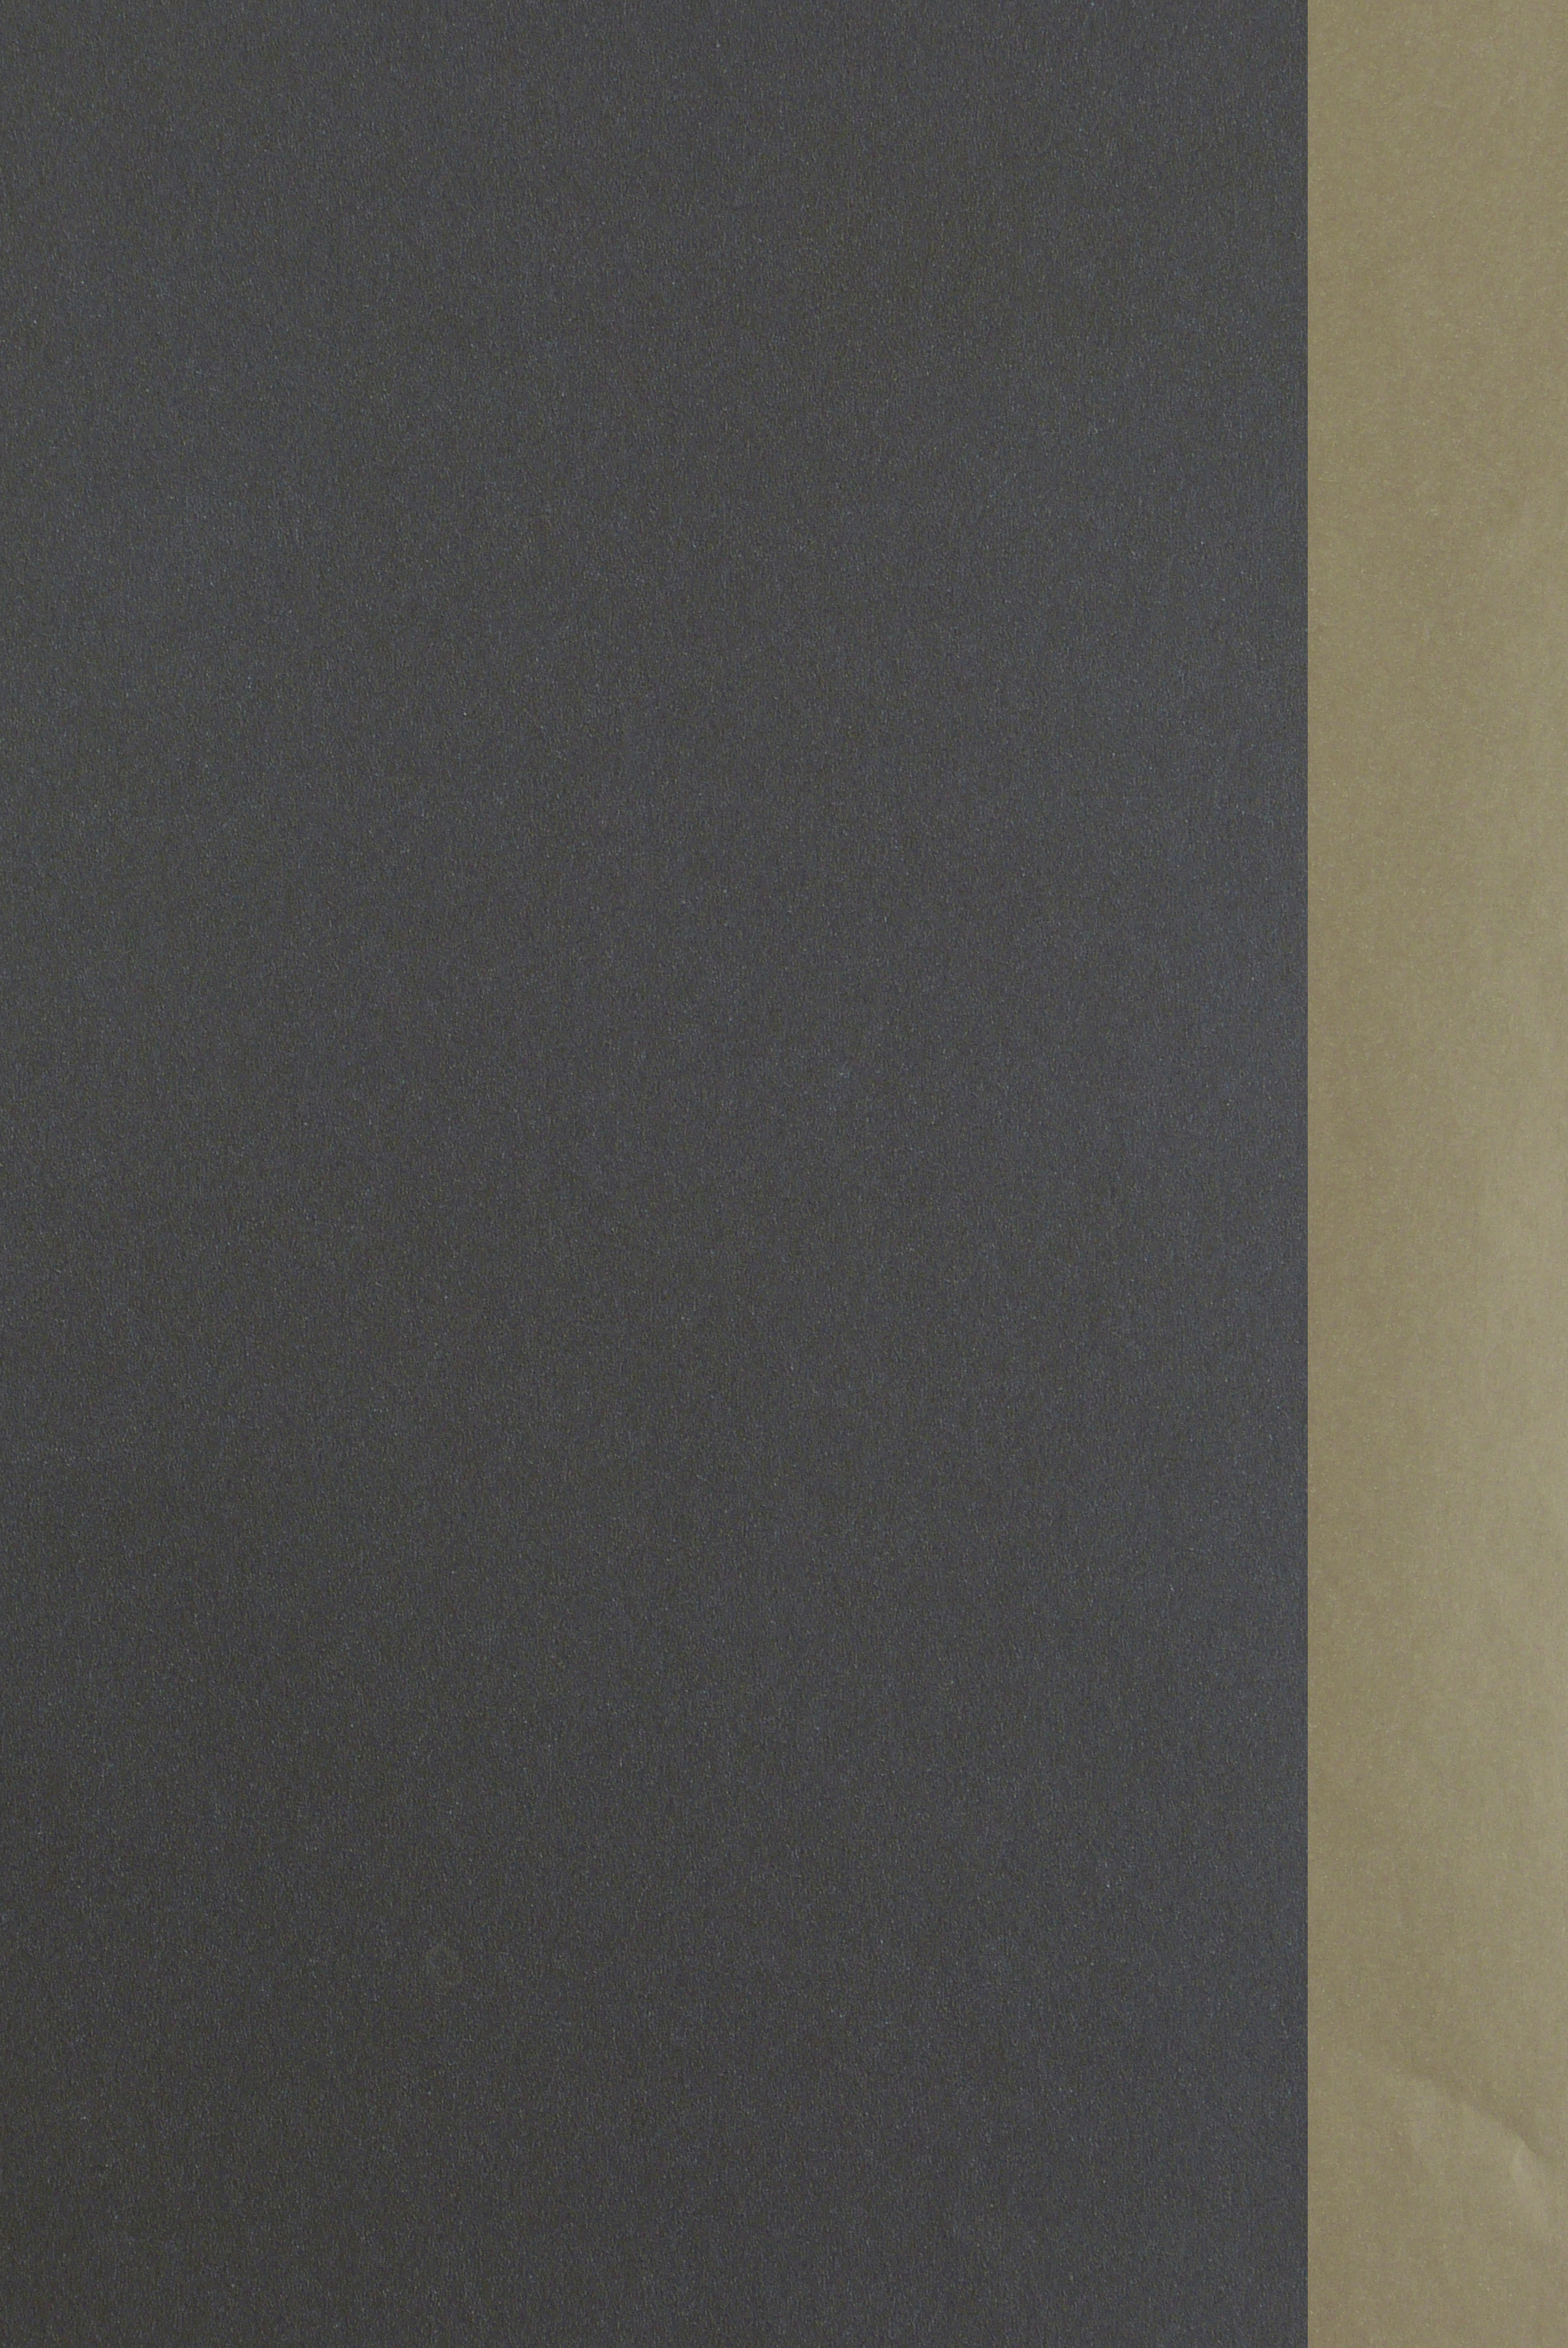 Cadeaupapier luxe taupe / champagne 50 cm